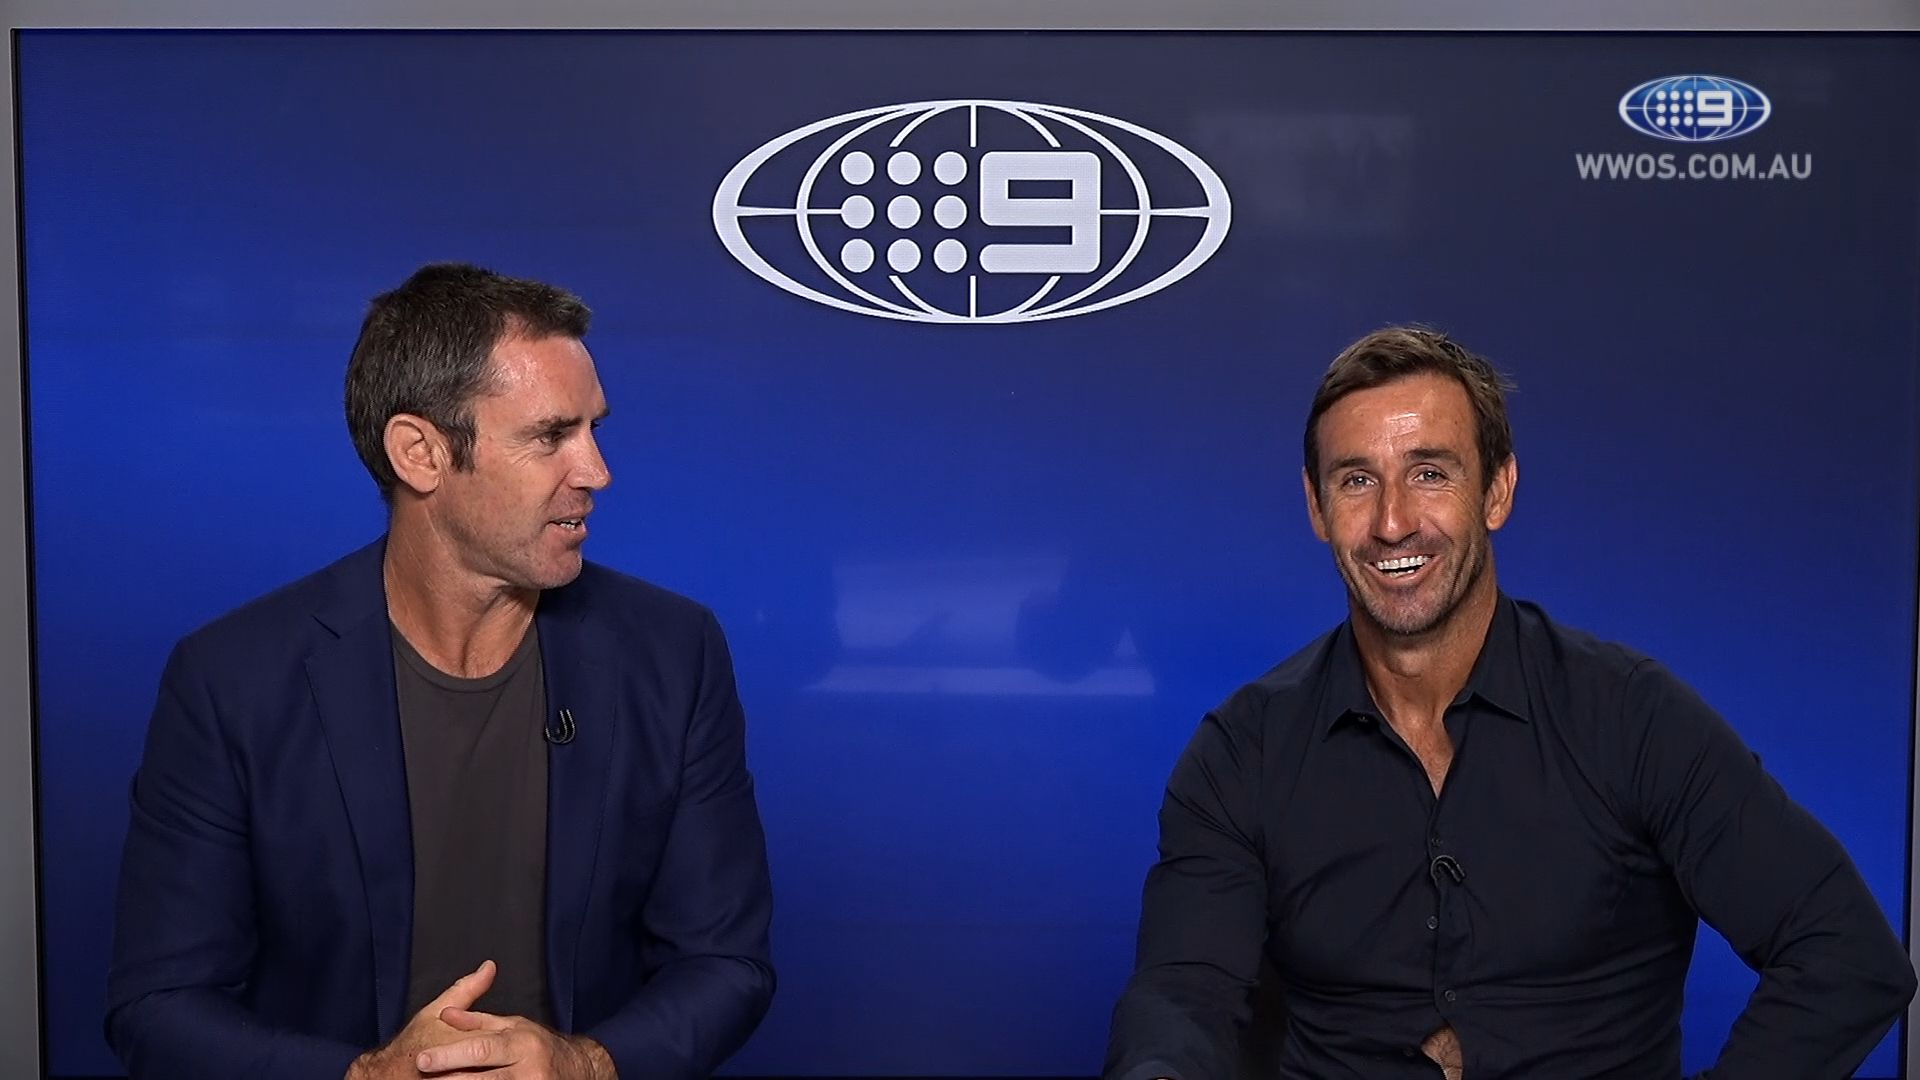 NRL Round 1 tips: Andrew Johns, Brad Fittler and Nine's experts give their predictions